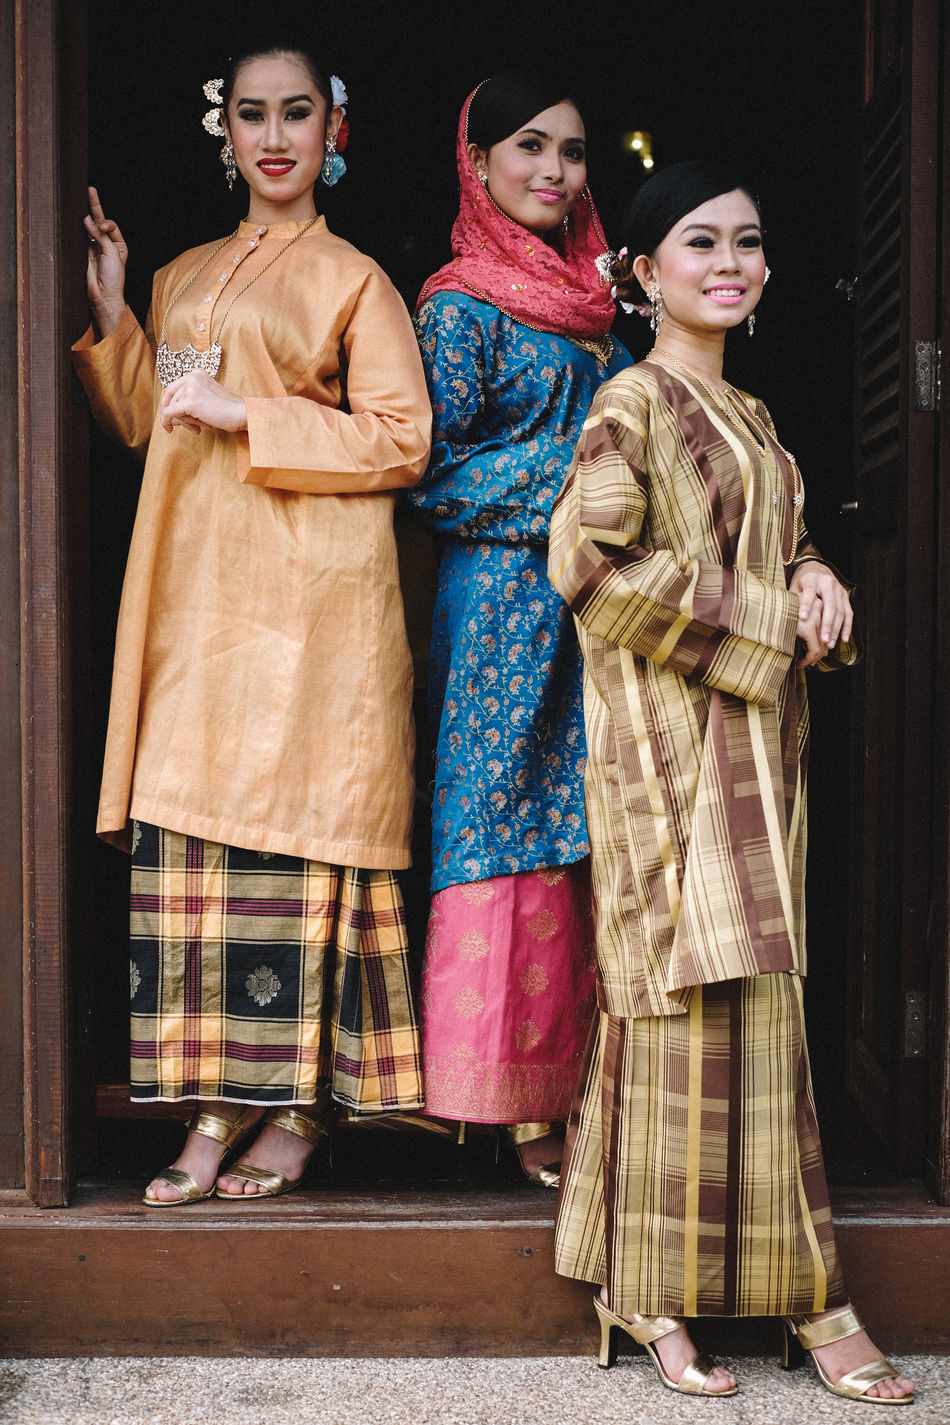 Adult Adults Only Day Fujifilm FUJIFILM X-T10 Fujifilm_xseries Malaysia Mature Adult Only Women Outdoors People Period Costume Royal Person Stage Costume Togetherness Traditional Traditional Clothing Traditional Costumes Women My Year My View